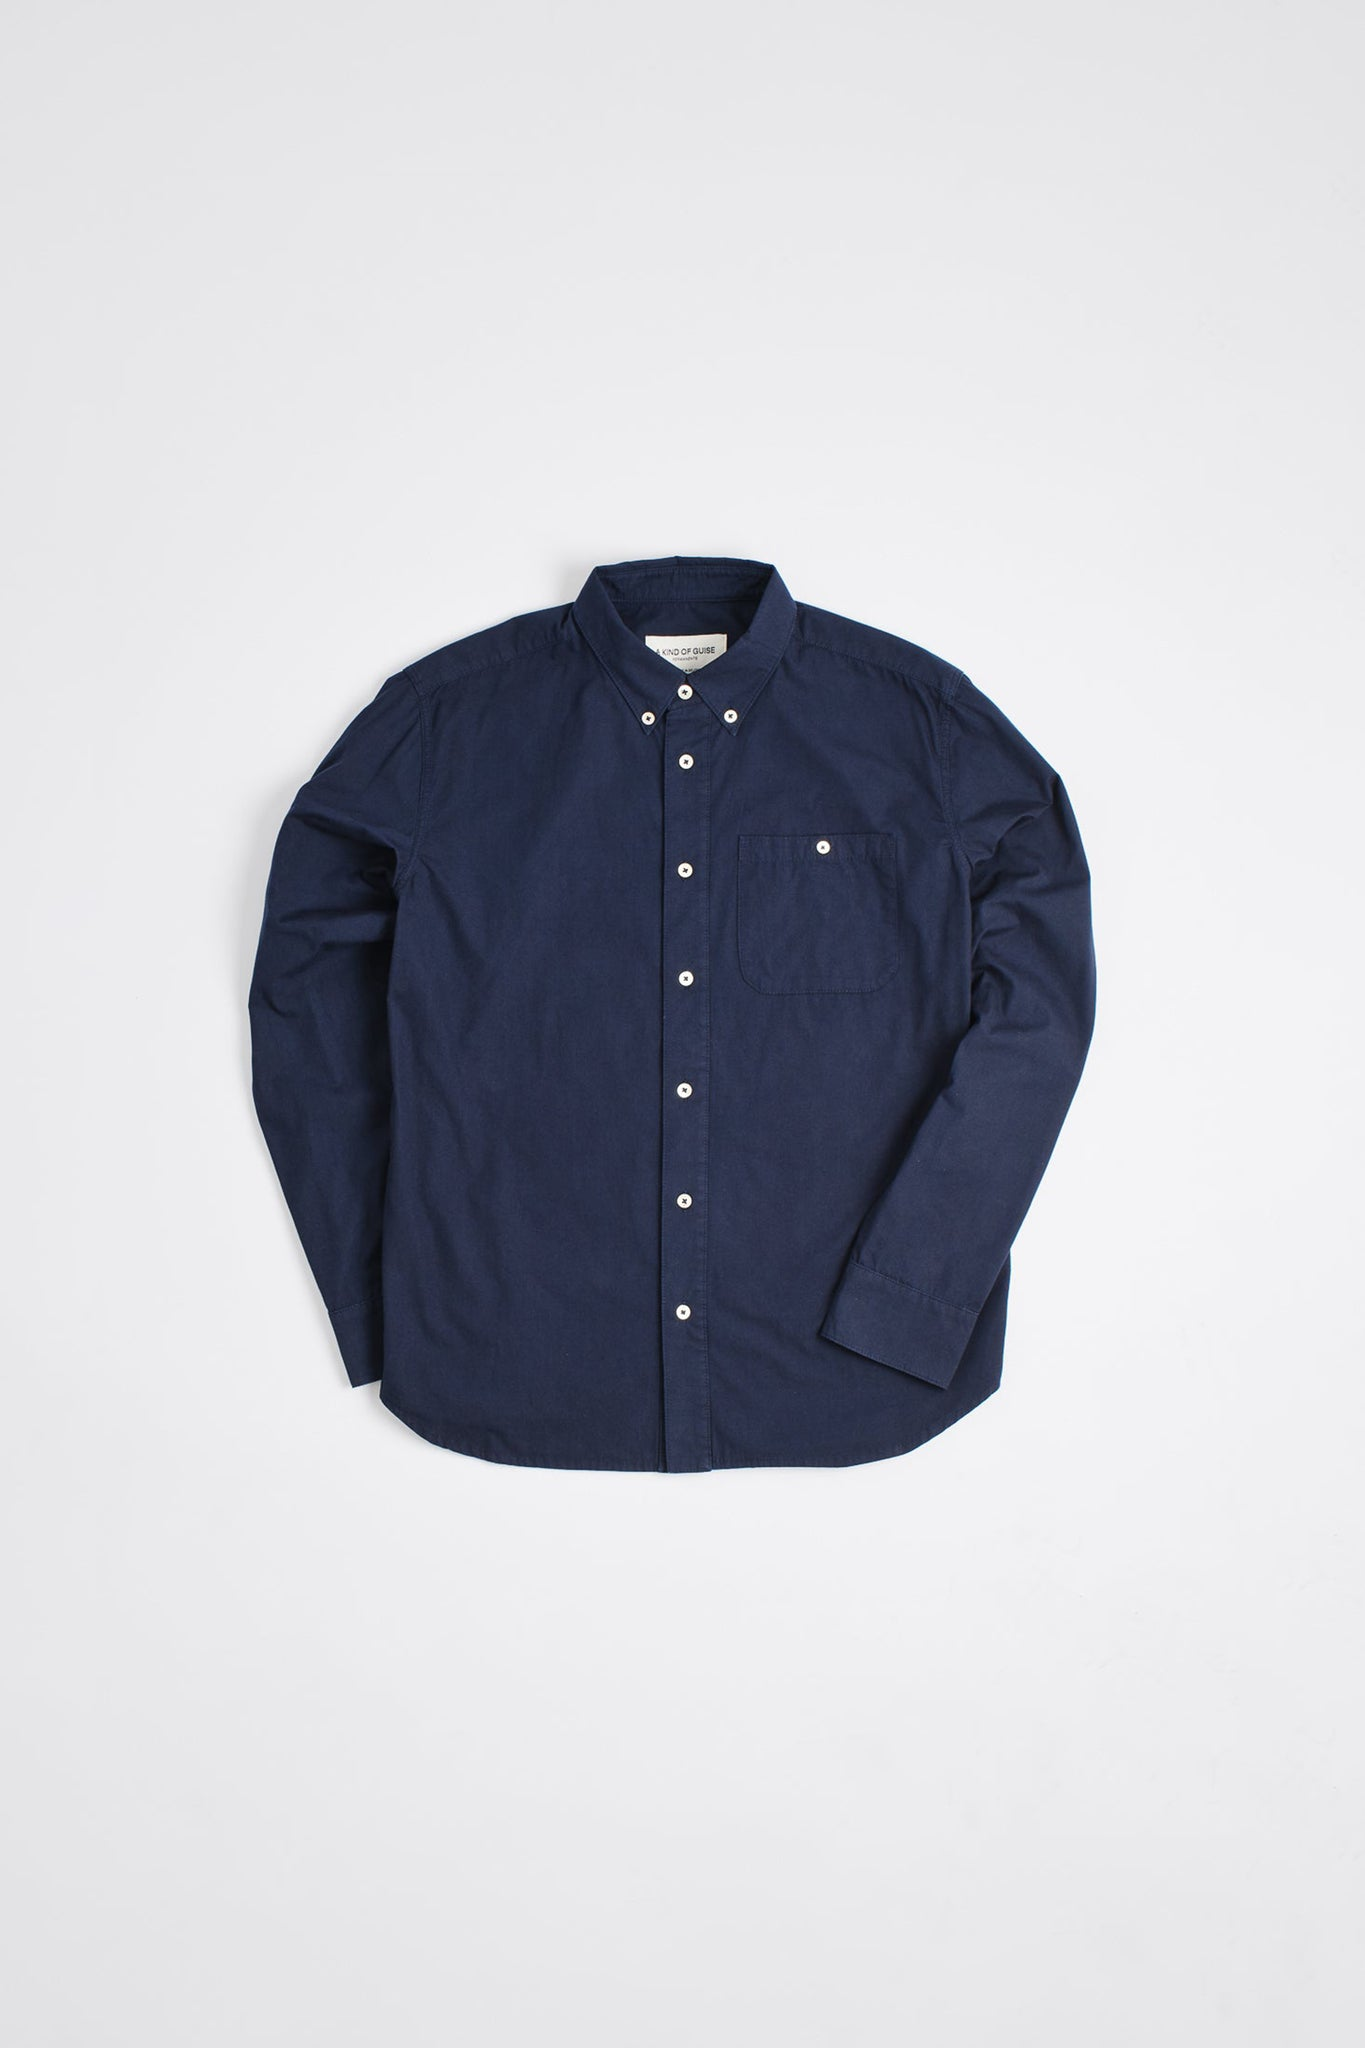 Permanents button down shirt washed navy